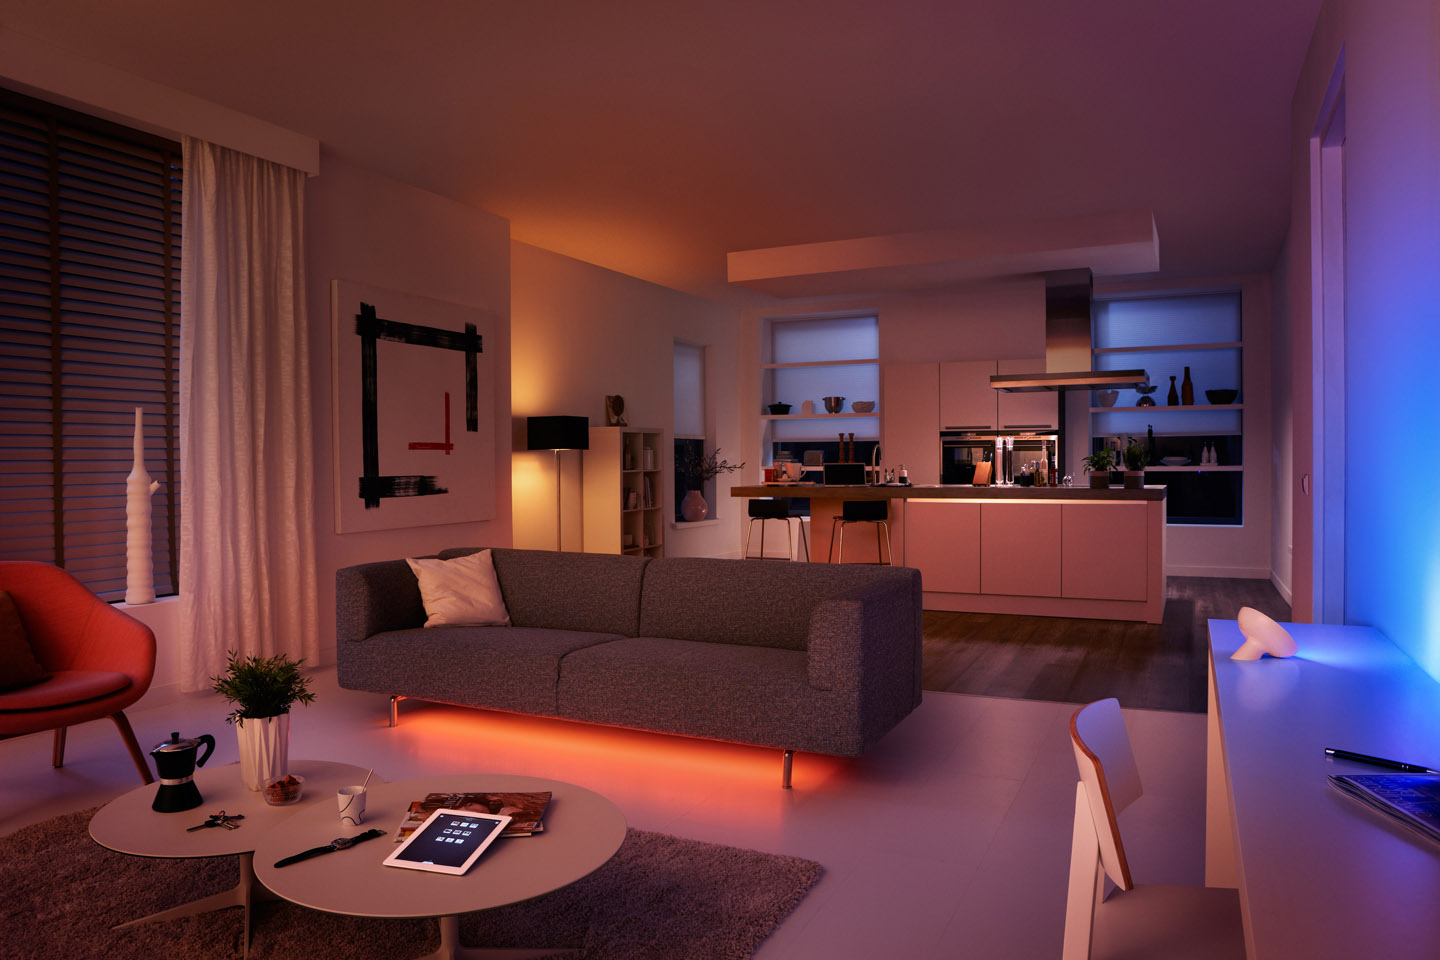 lampes philips Hue